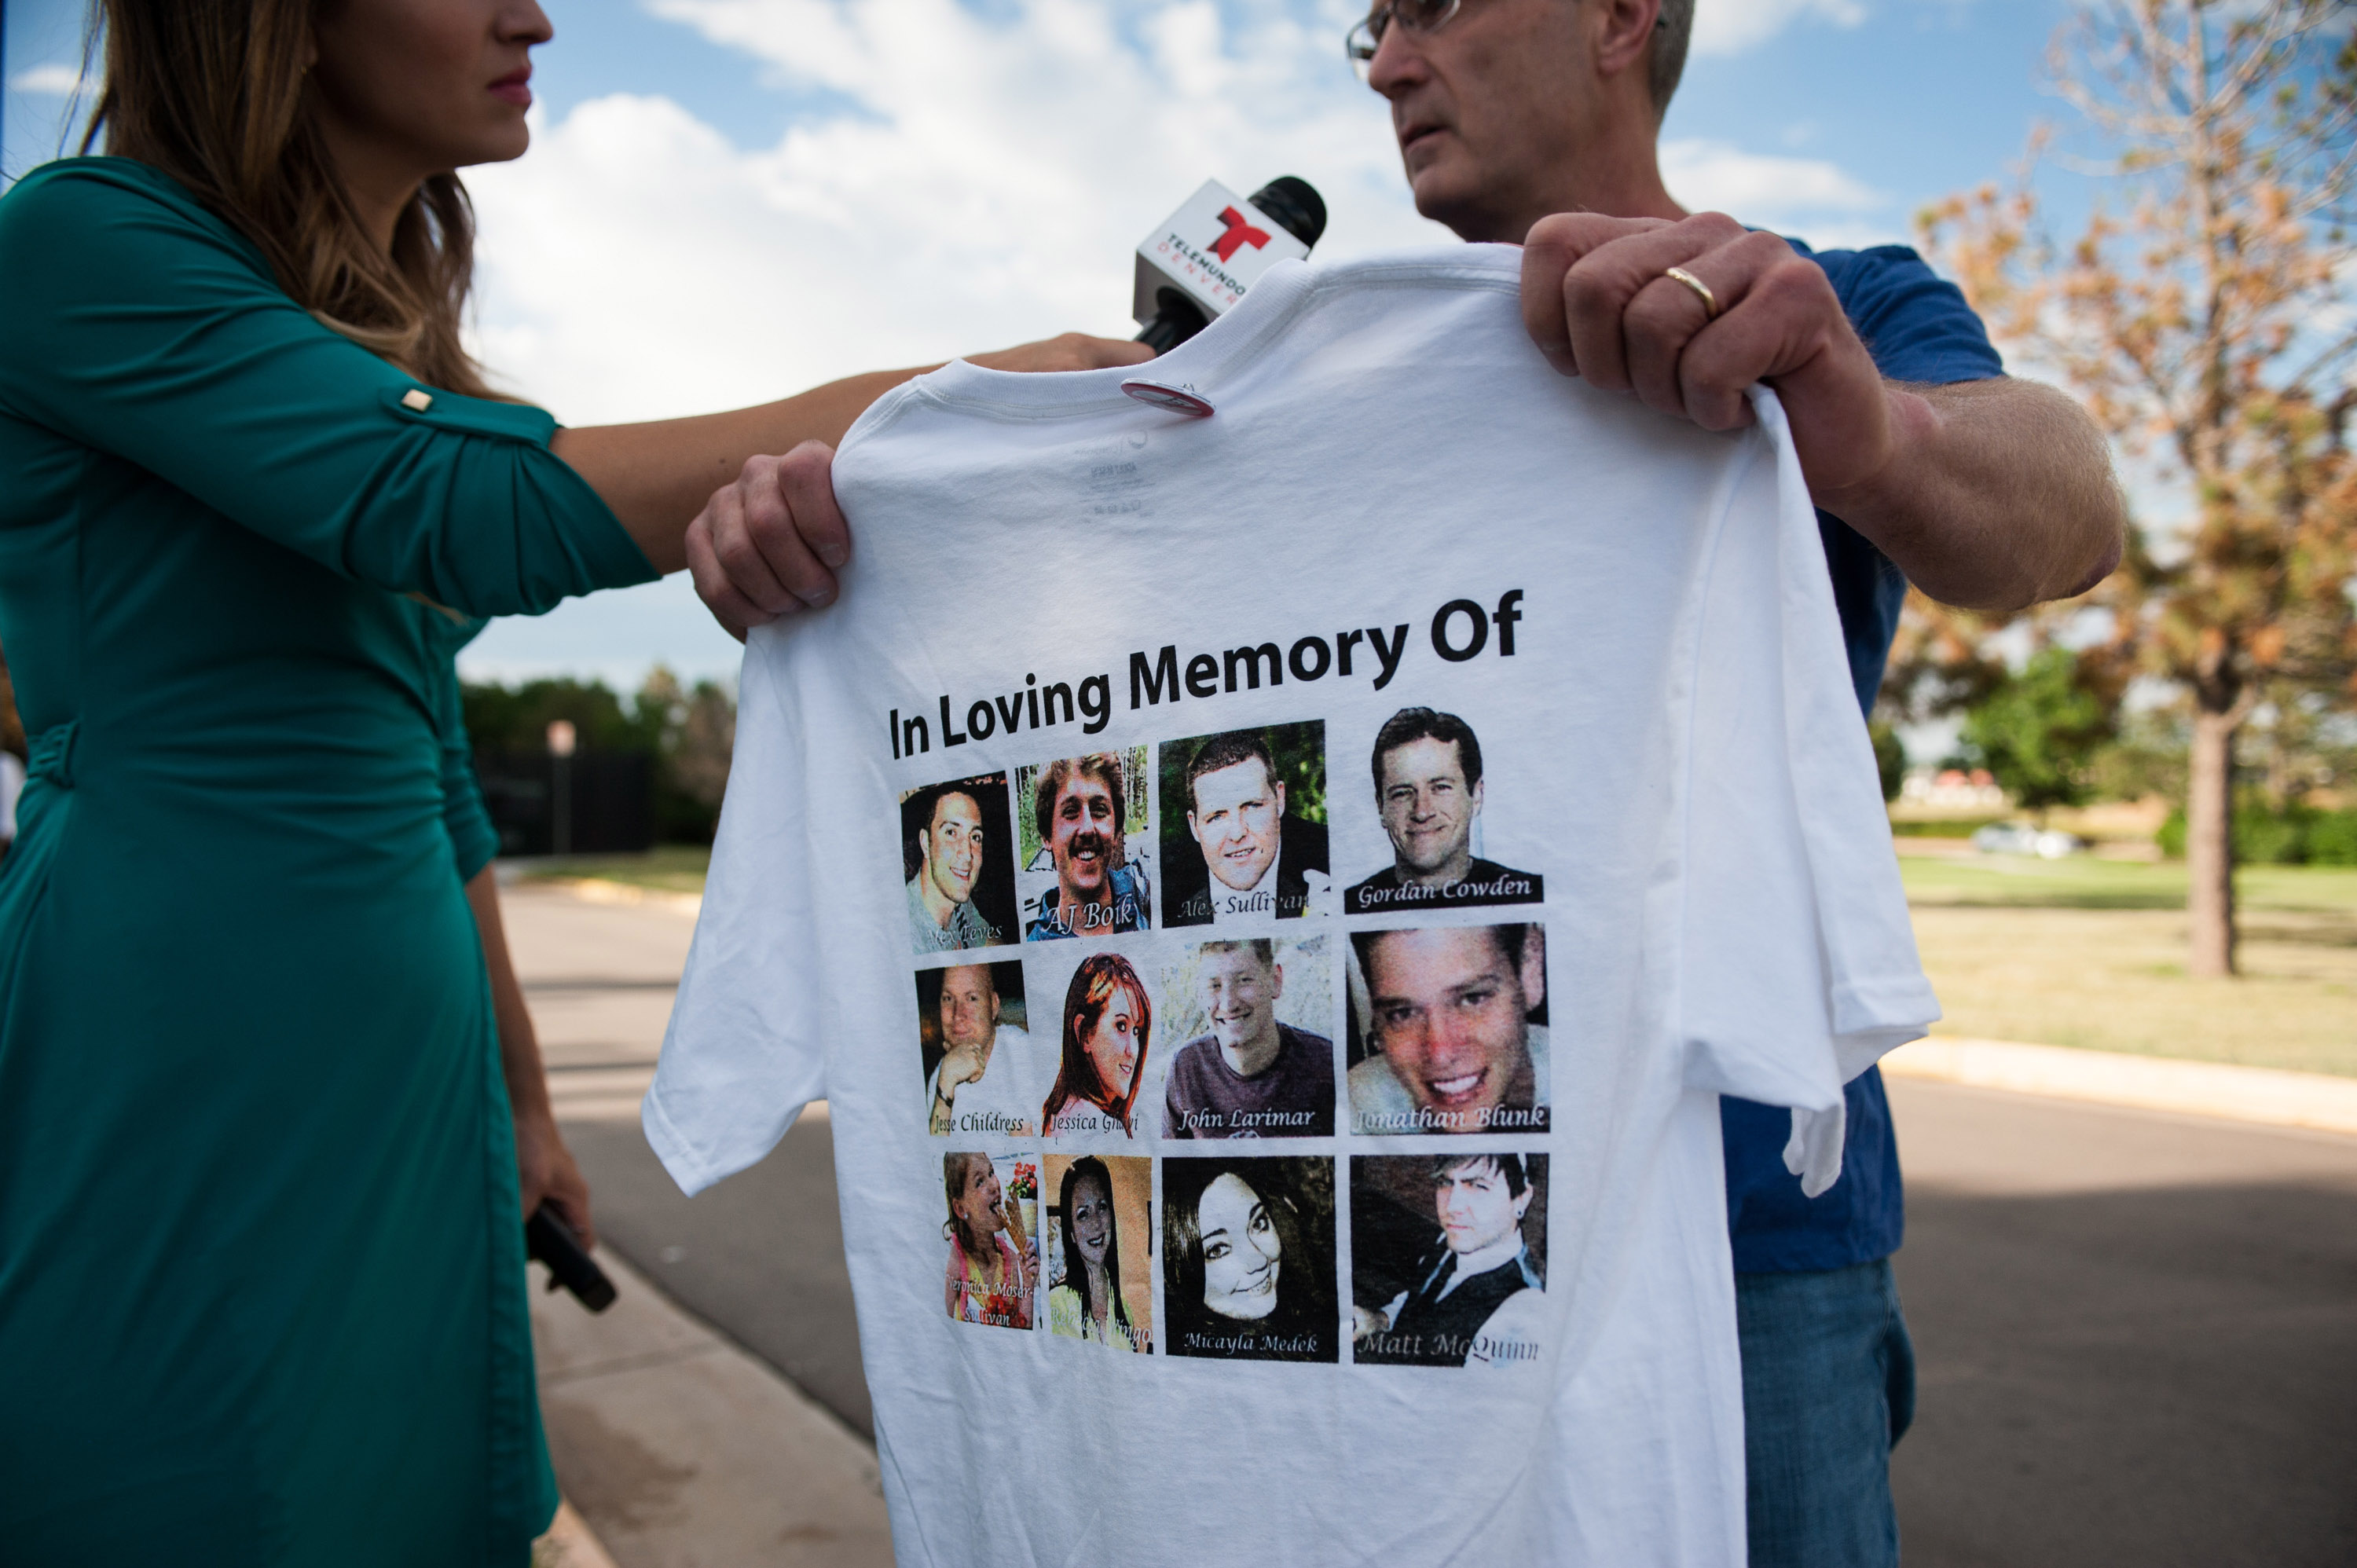 CENTENNIAL, CO - JULY 16:  Tom Teves, the father of Aurora shooting victim Alex Teves, is interviewed after a verdict was delivered in the trial of James Holmes at the Arapahoe County Justice Center on July 16, 2015 in Centennial, Colorado.  (Photo by Theo Stroomer/Getty Images)